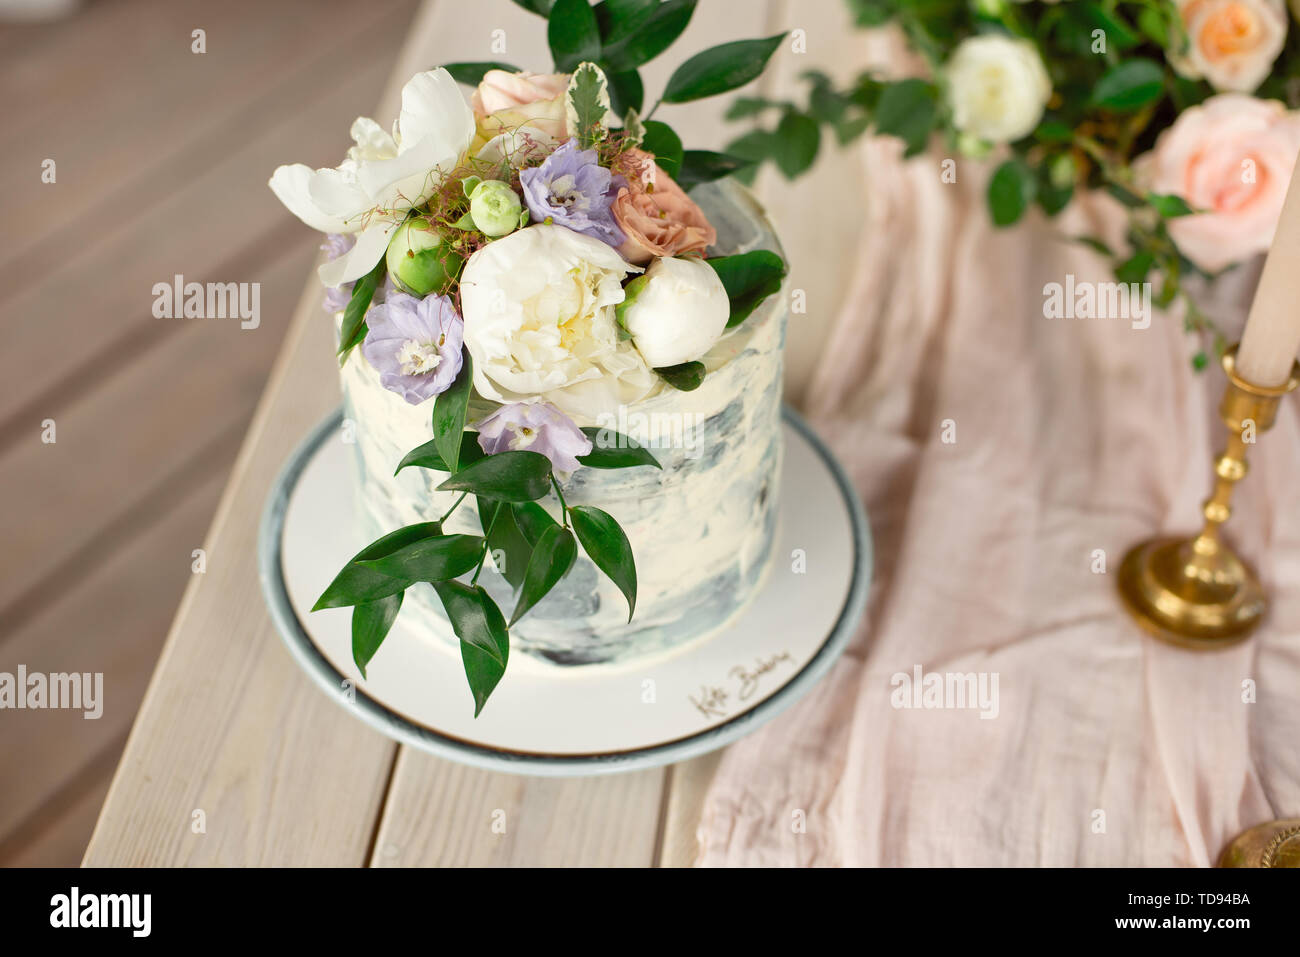 Wedding Decoration Table In The Garden Floral Arrangement In The